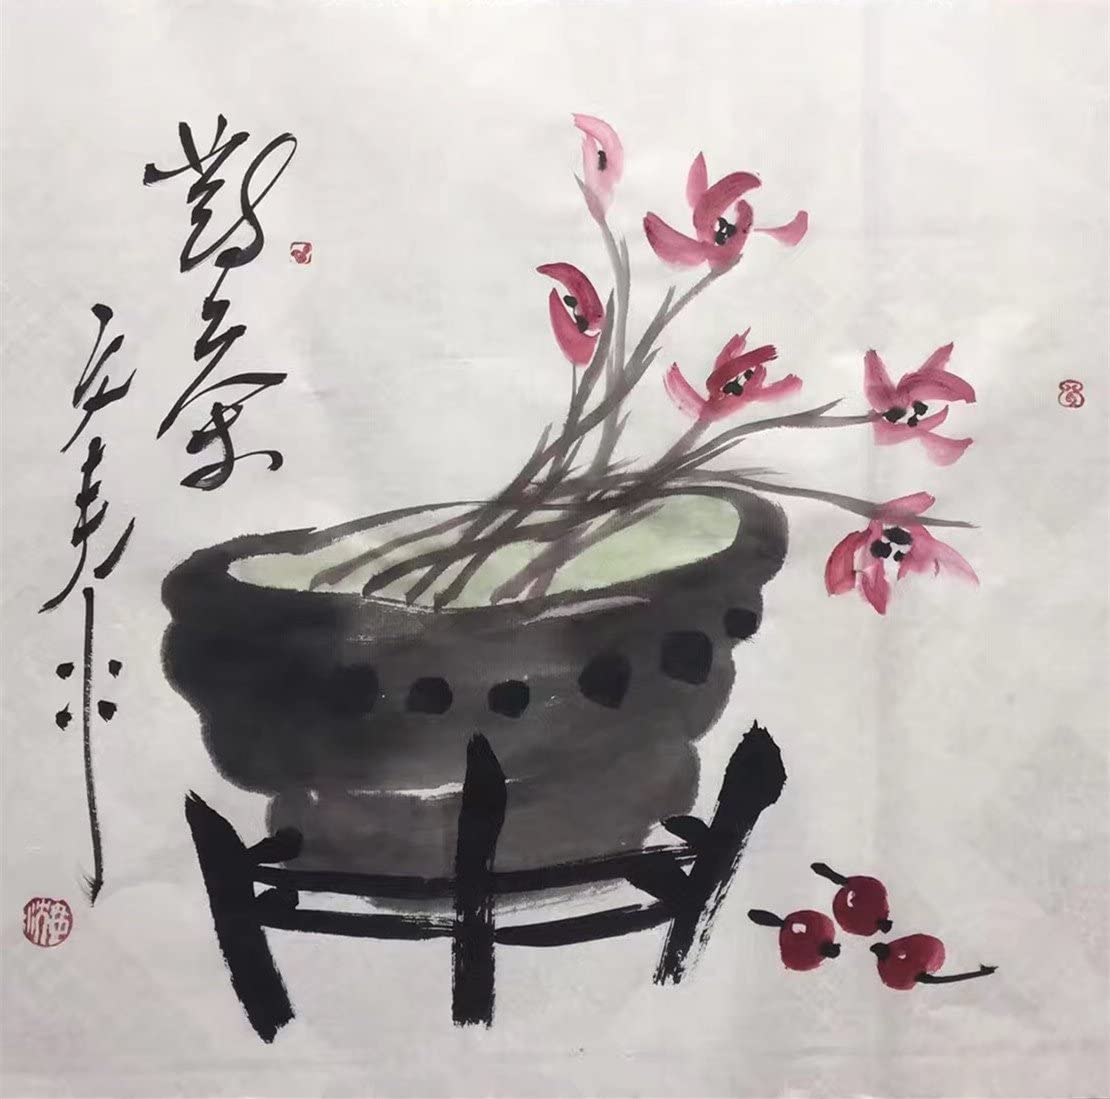 Handmade Thickened Chinese Calligraphy Brush Ink Writing Sumi Paper Xuan Papers Set Art Paper for Beginners Practice Chinese Painting Drawing Rice Paper Cooked Rice Paper, 14/×11 inch